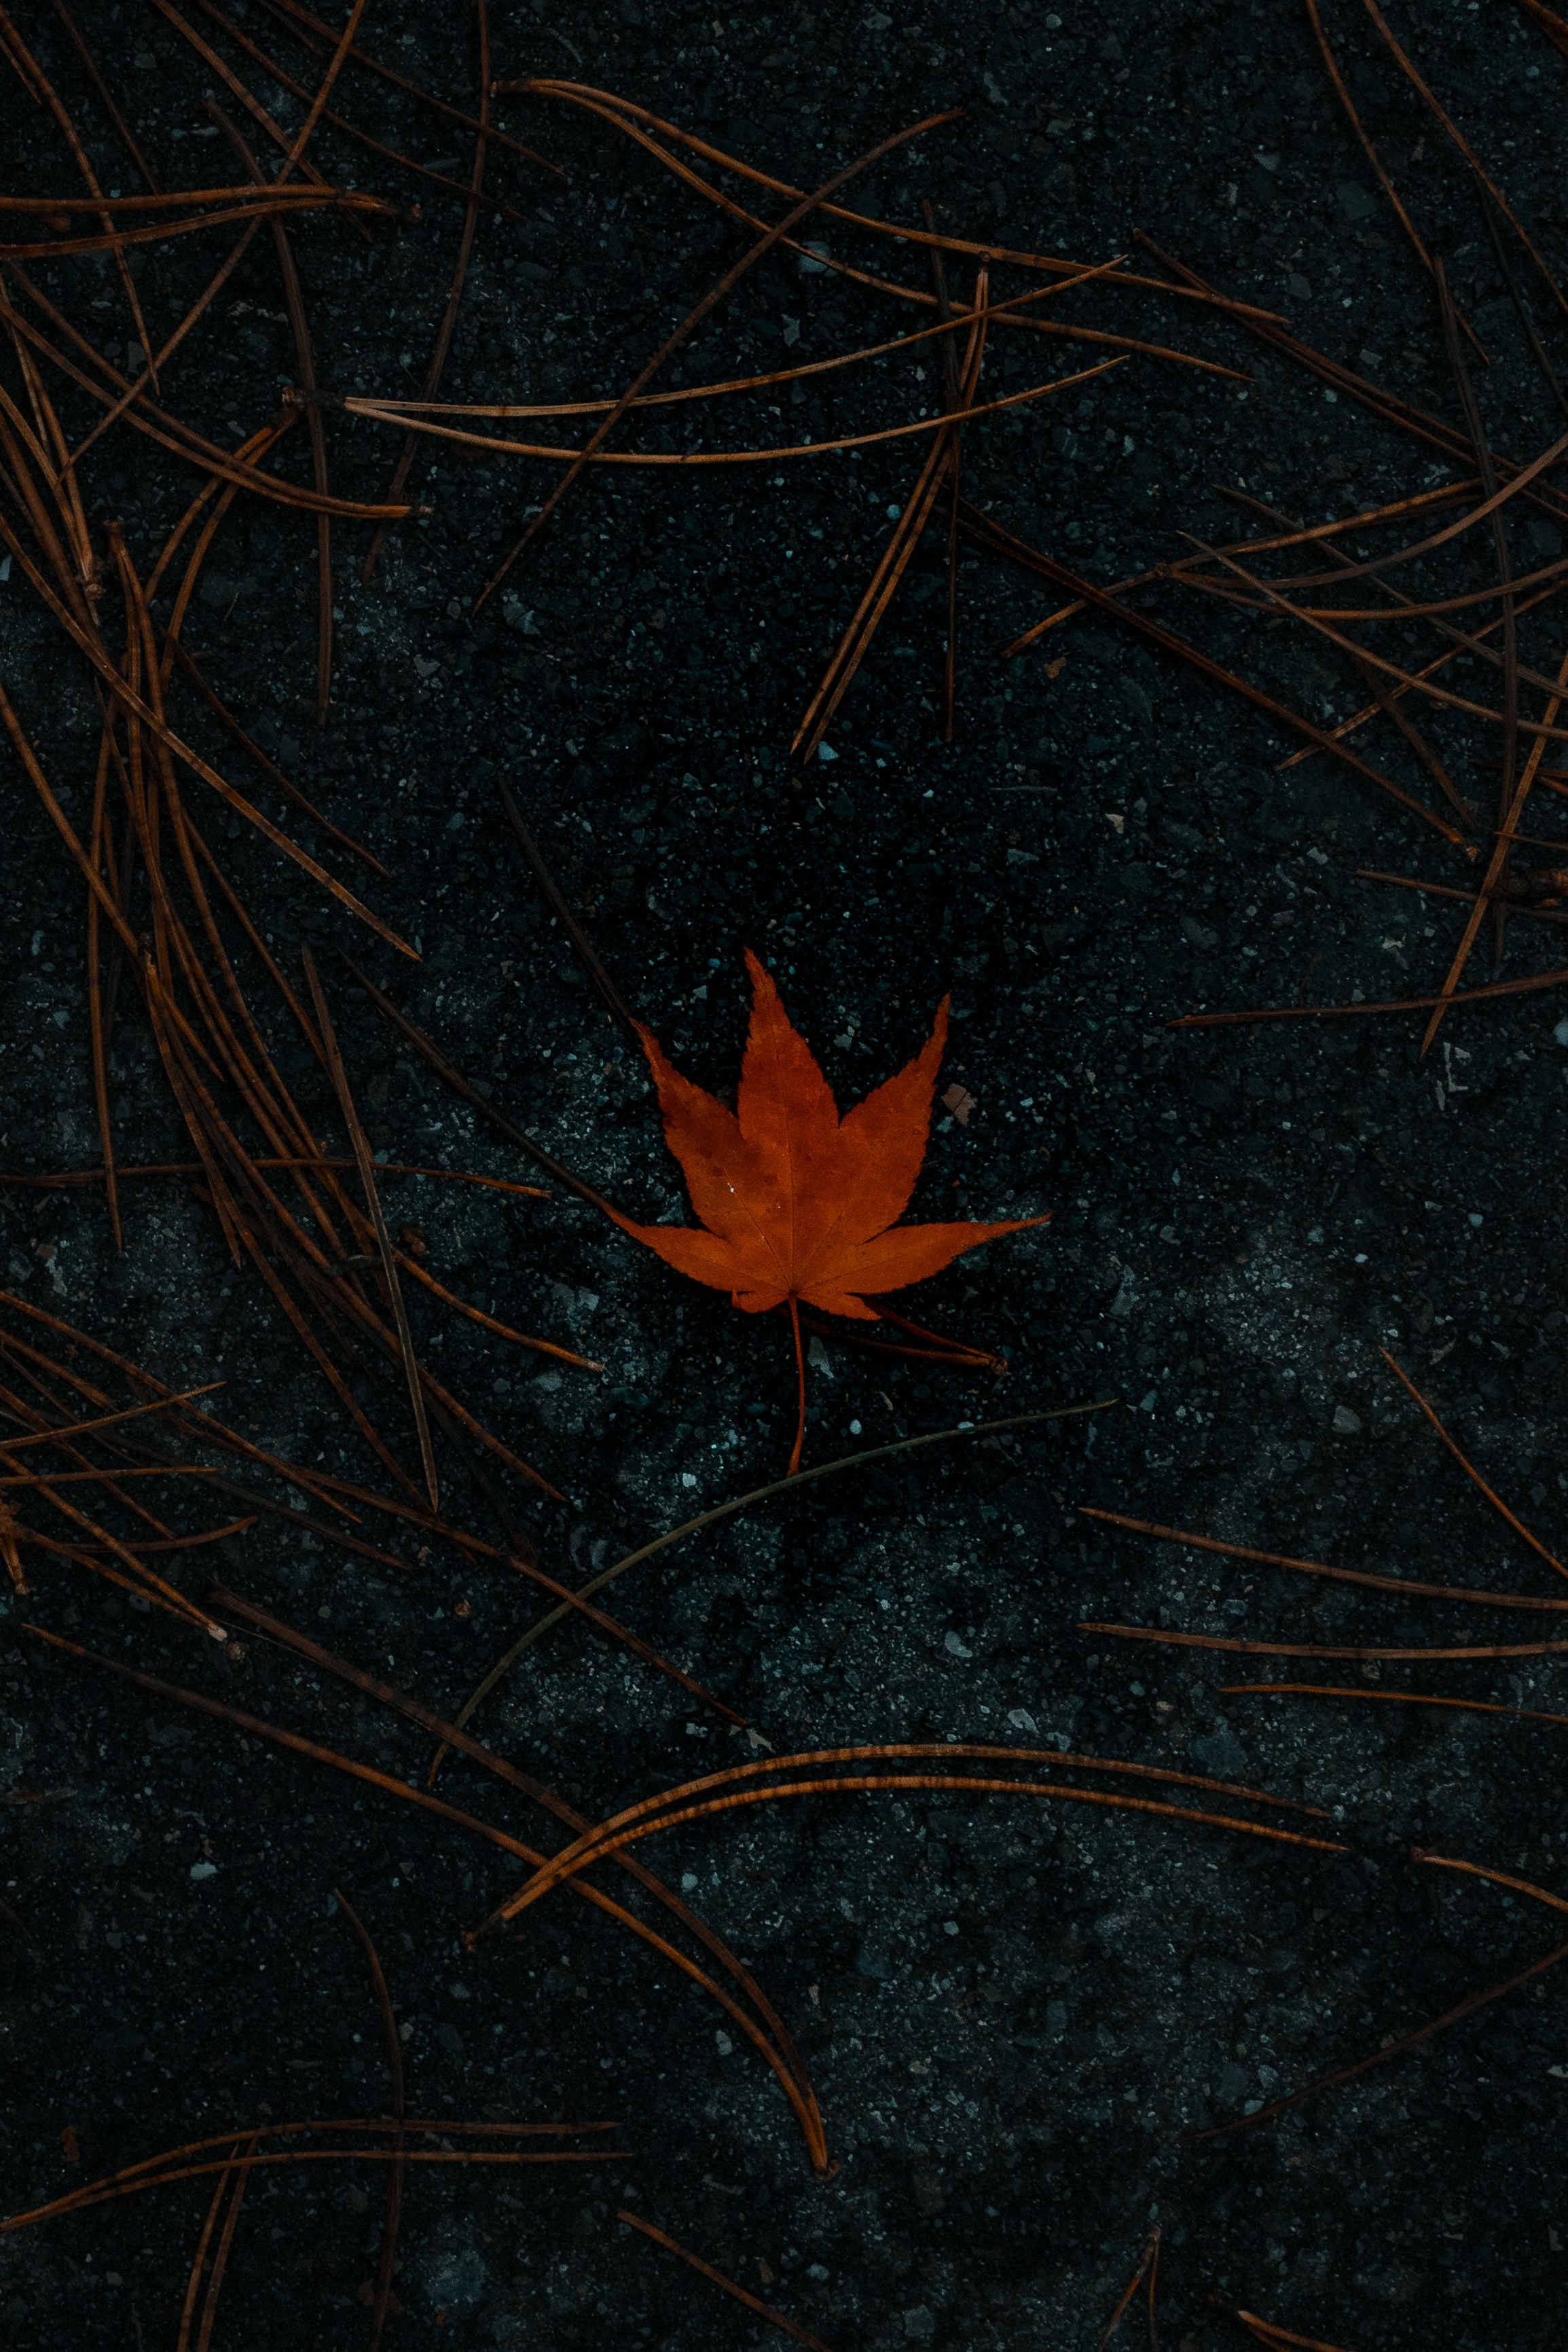 147996 download wallpaper Macro, Leaflet, Maple, Asphalt, Autumn screensavers and pictures for free